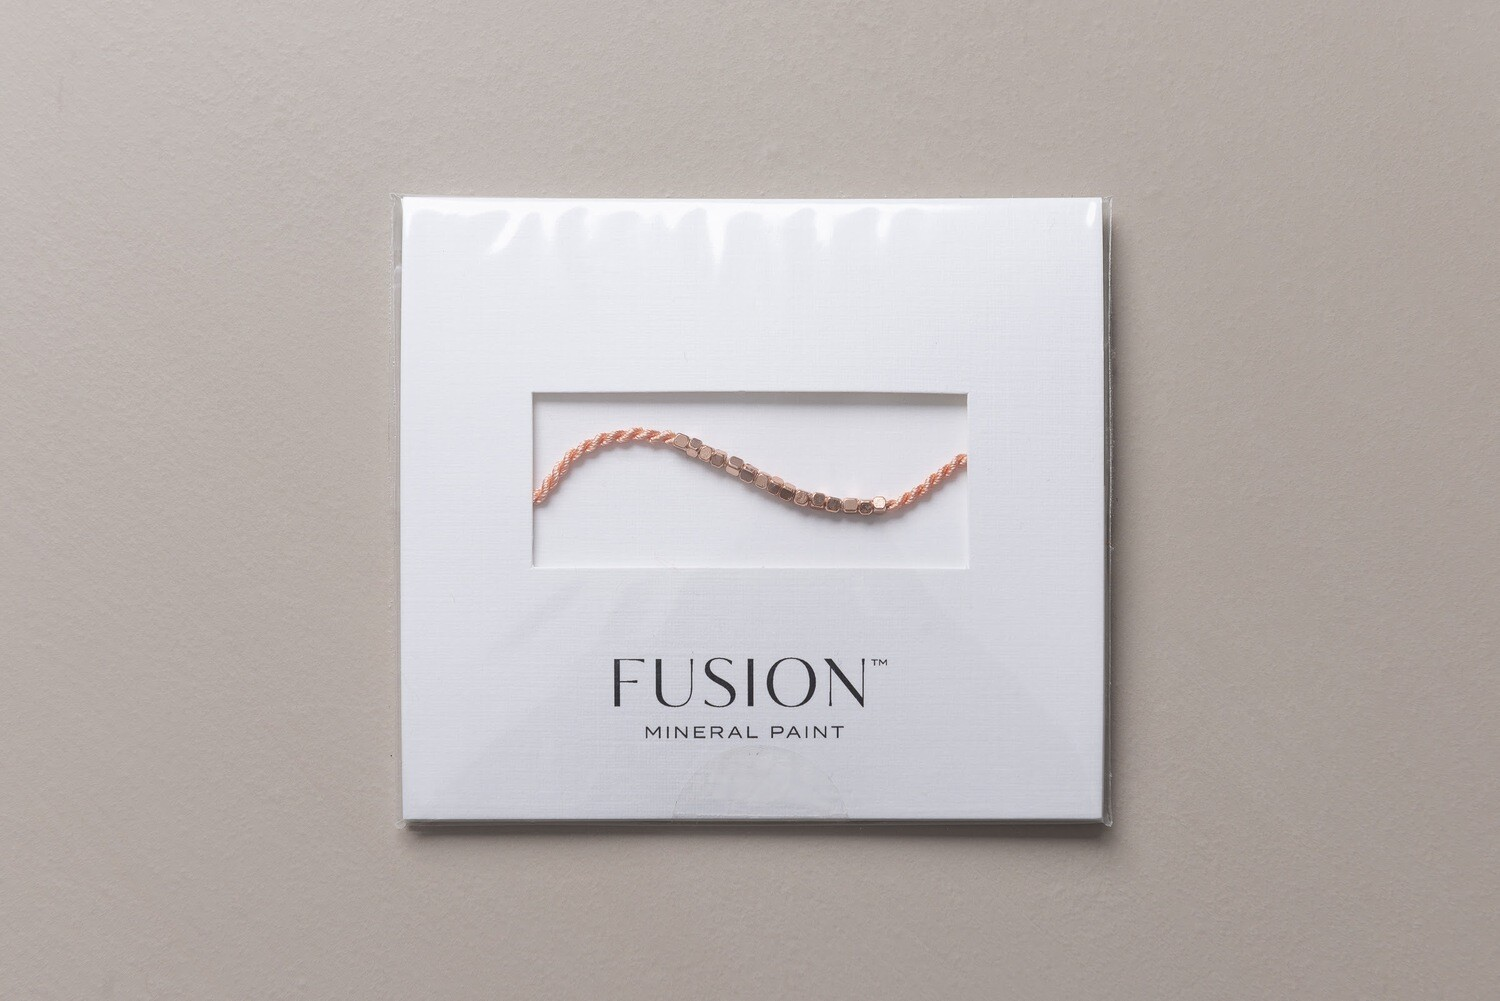 Pink and Gold Fusion Bracelet